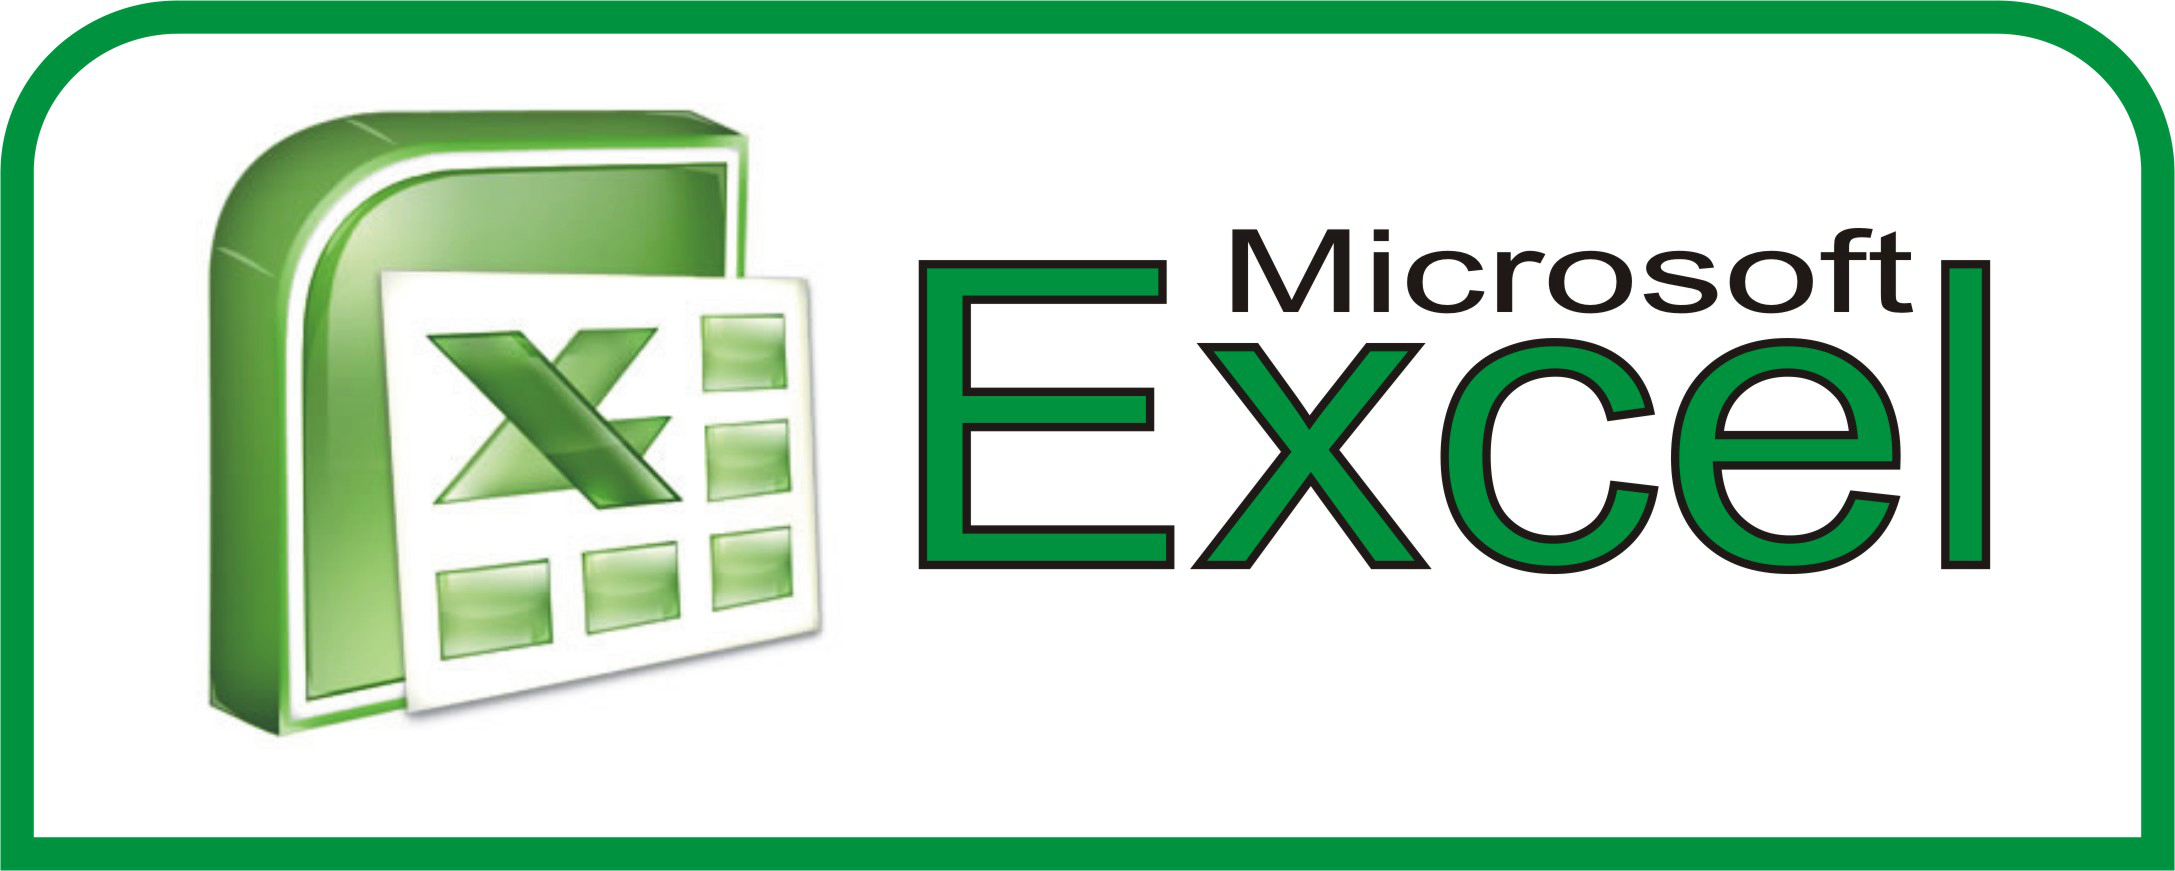 Ediblewildsus  Gorgeous  Excel Shortcuts You Probably Didnt Know About  Techdissected With Marvelous Percentage In Excel Besides Excel Found Unreadable Content Furthermore Find Excel With Archaic Excel For Beginners Also How To Add A Line In Excel In Addition How To Freeze A Column In Excel And Excel Relationships As Well As How To Freeze Rows In Excel  Additionally How To Change Column Width In Excel From Techdissectedcom With Ediblewildsus  Marvelous  Excel Shortcuts You Probably Didnt Know About  Techdissected With Archaic Percentage In Excel Besides Excel Found Unreadable Content Furthermore Find Excel And Gorgeous Excel For Beginners Also How To Add A Line In Excel In Addition How To Freeze A Column In Excel From Techdissectedcom